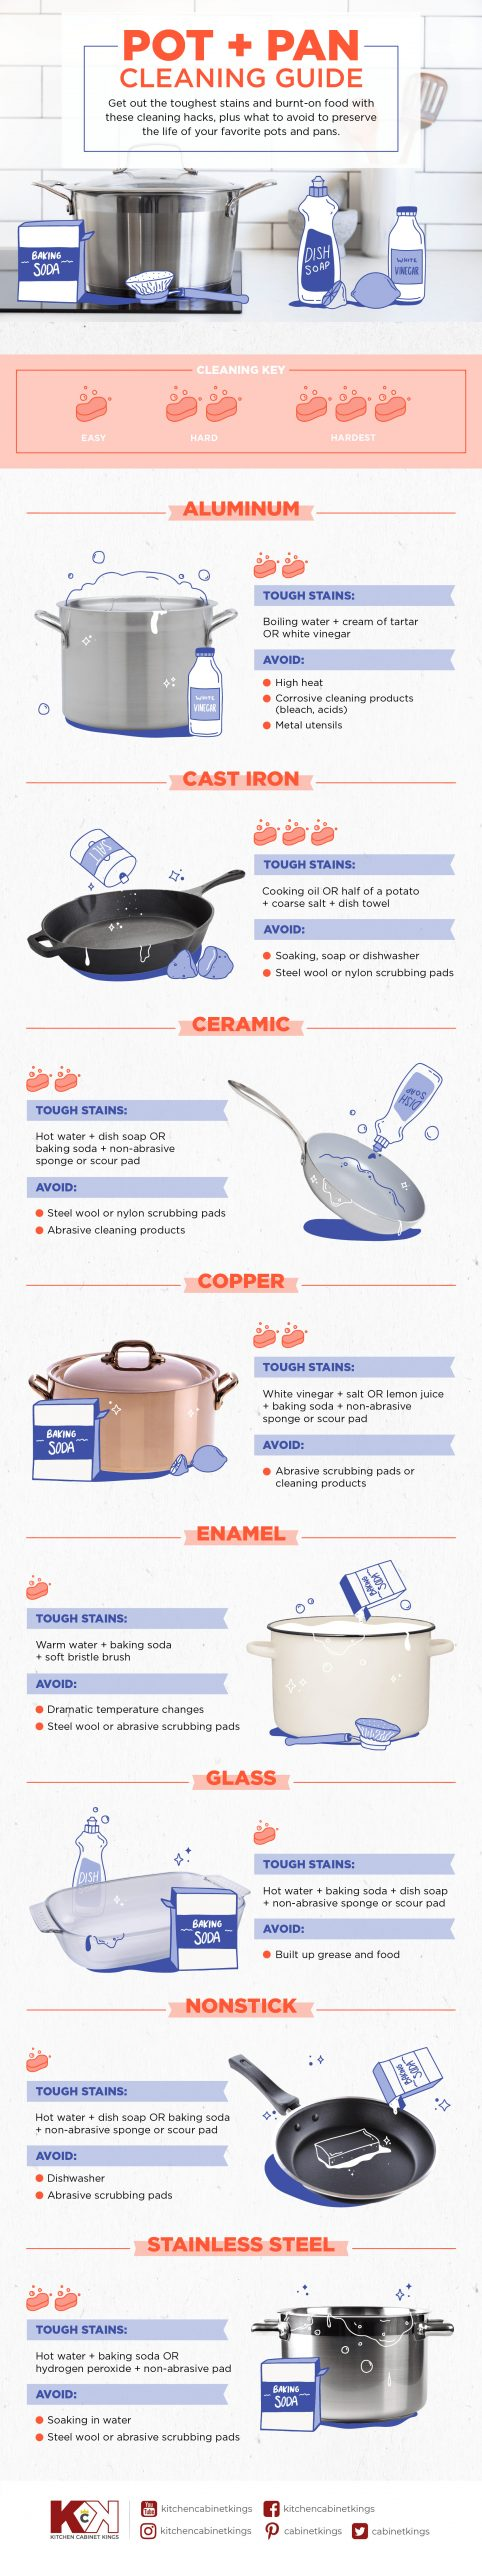 pot and pan cleaning guide infographic